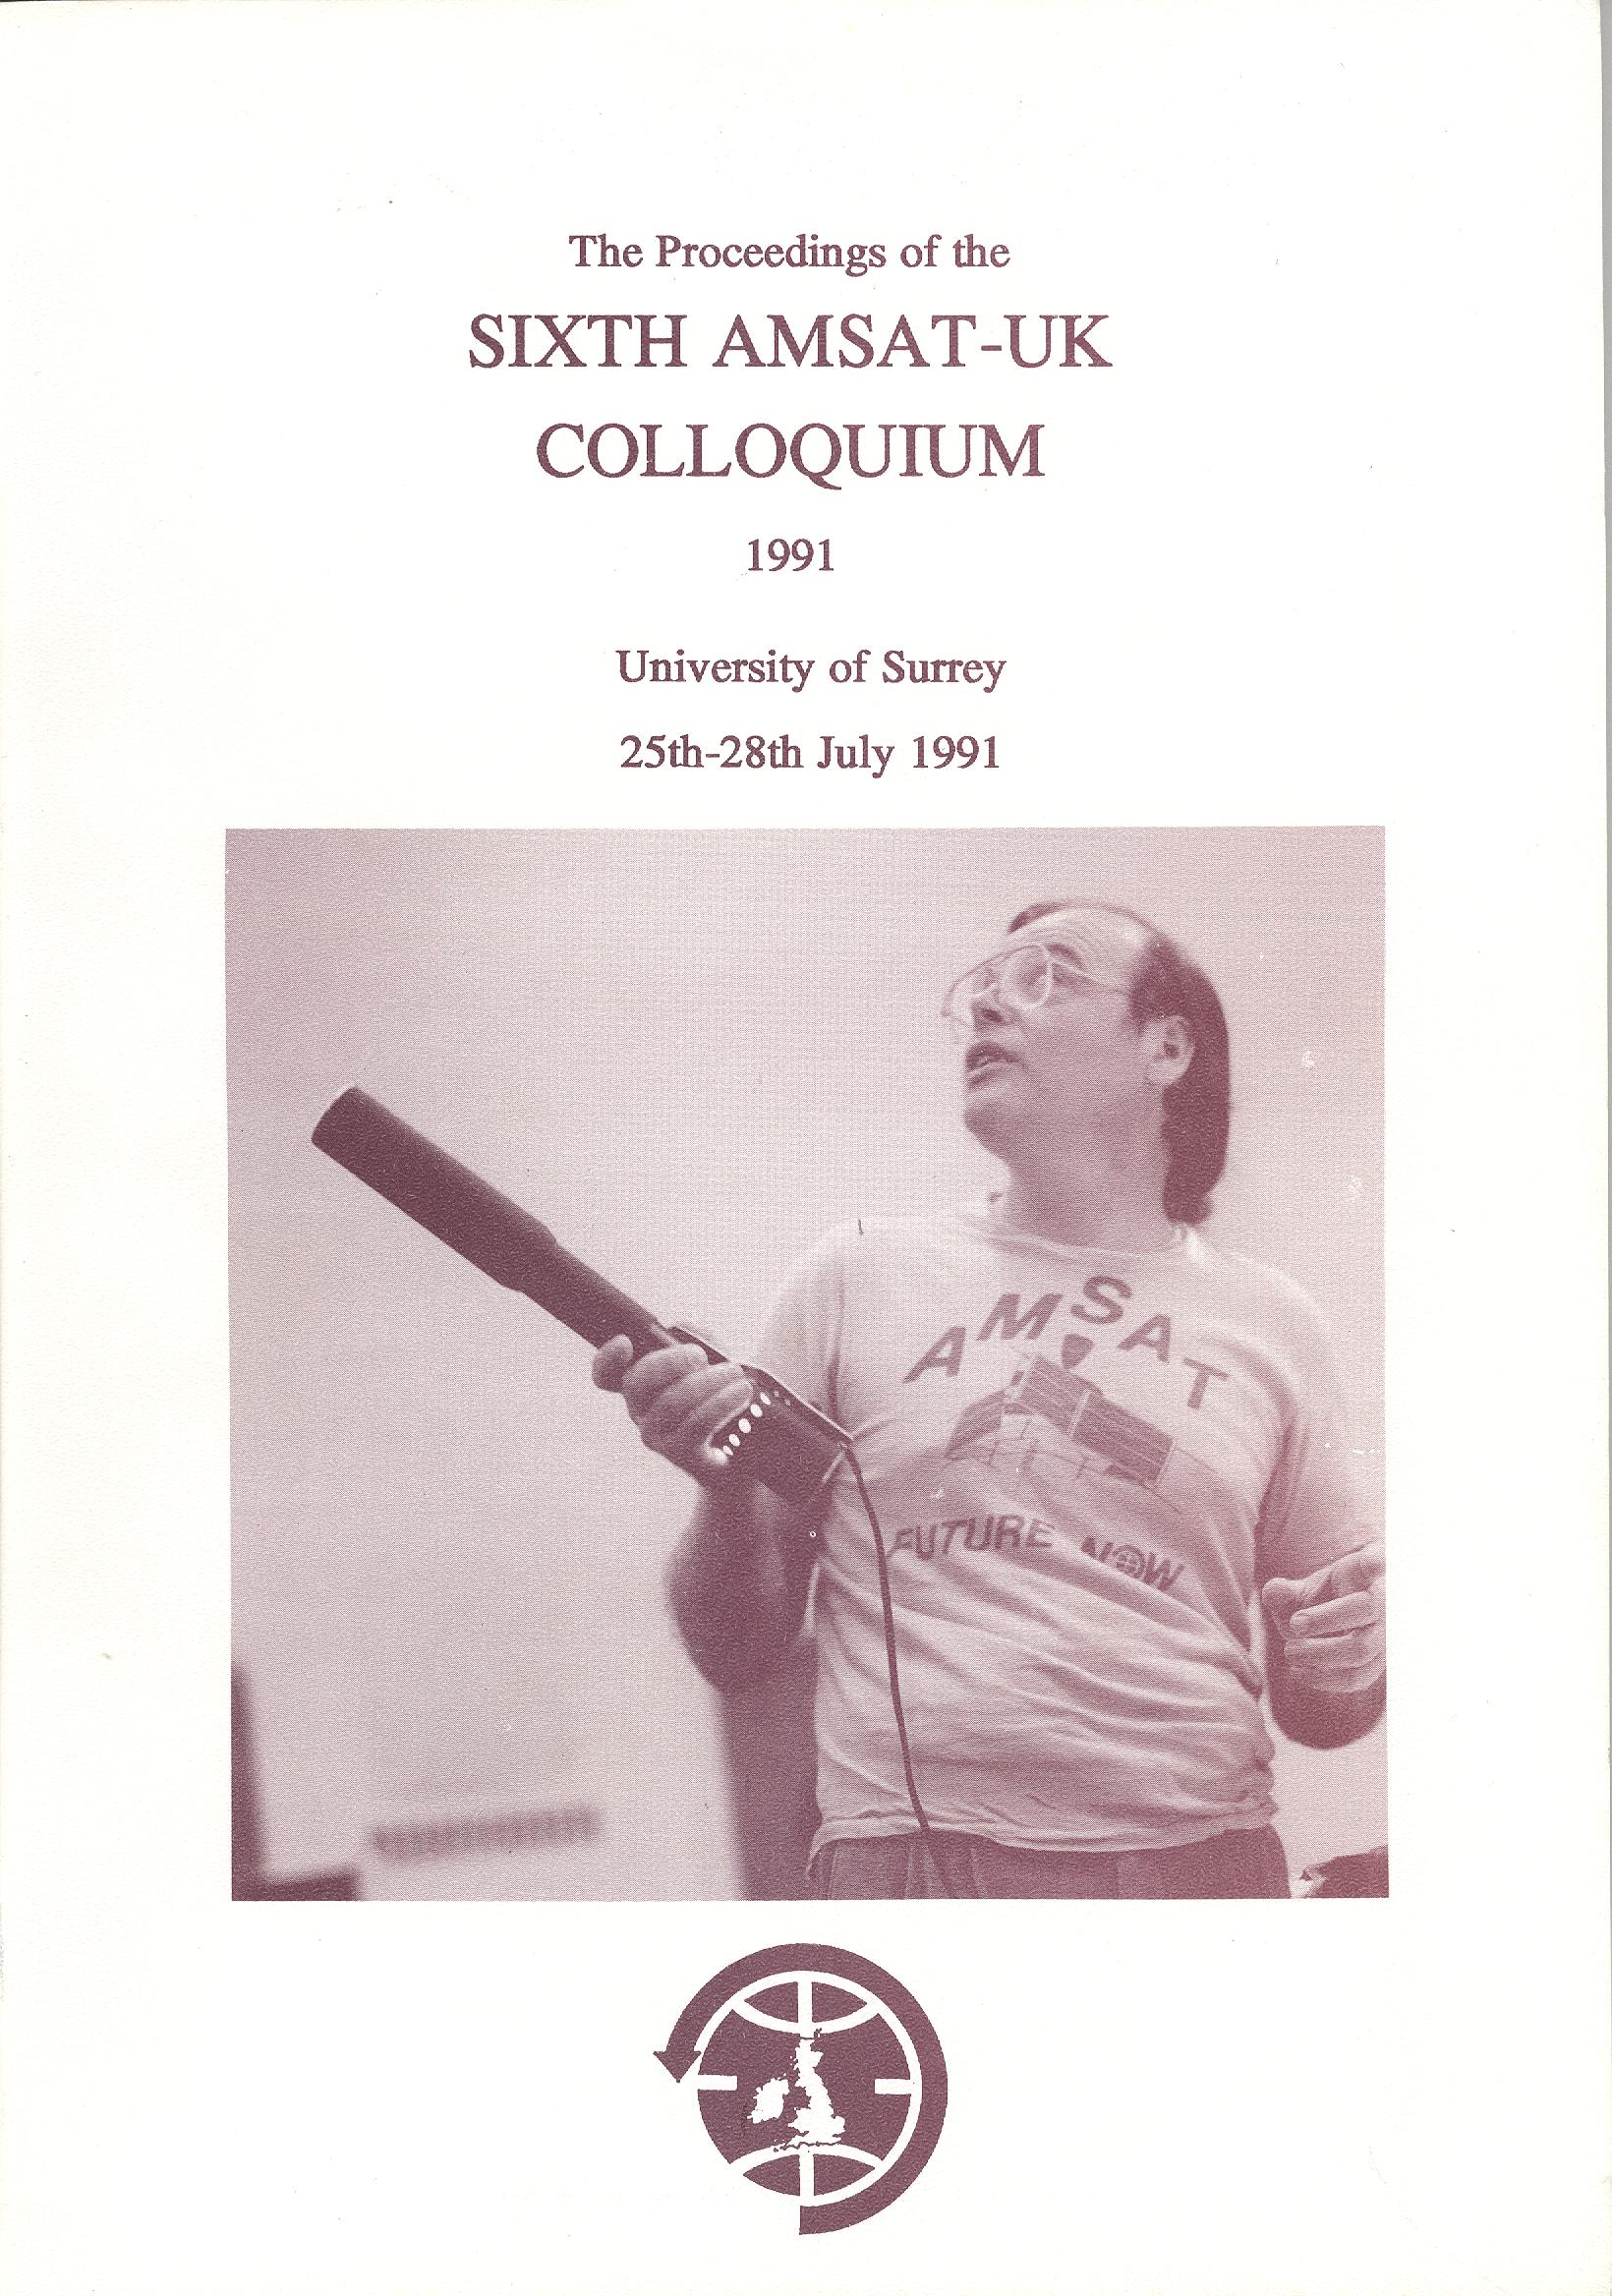 The Proceedings of the Sixth AMSAT-UK Colloquium 1991